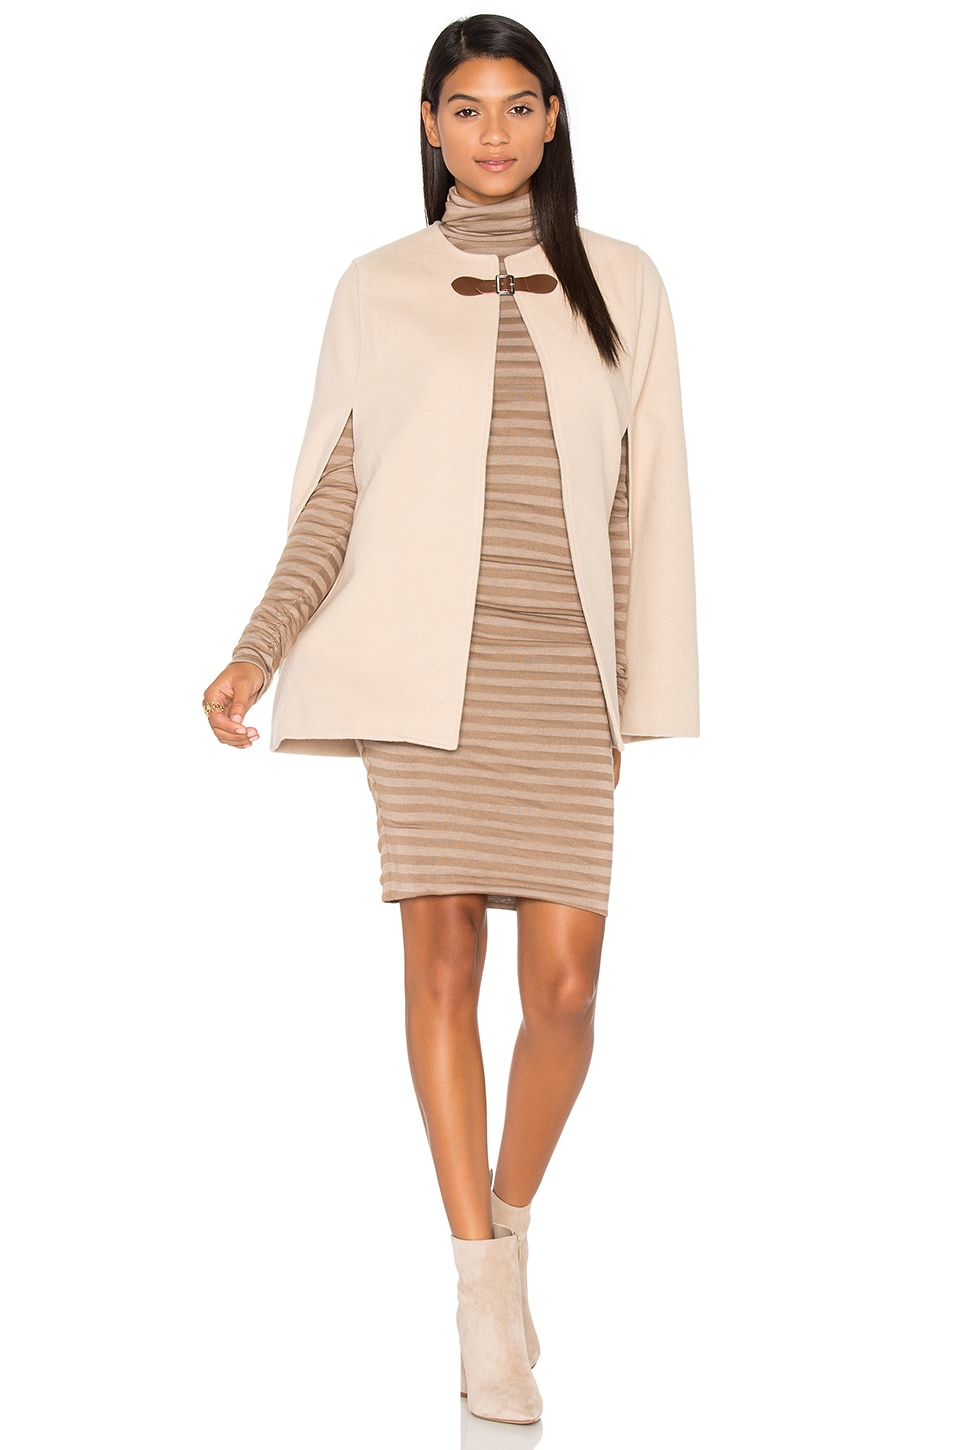 WAYF Easton Cape in Beige